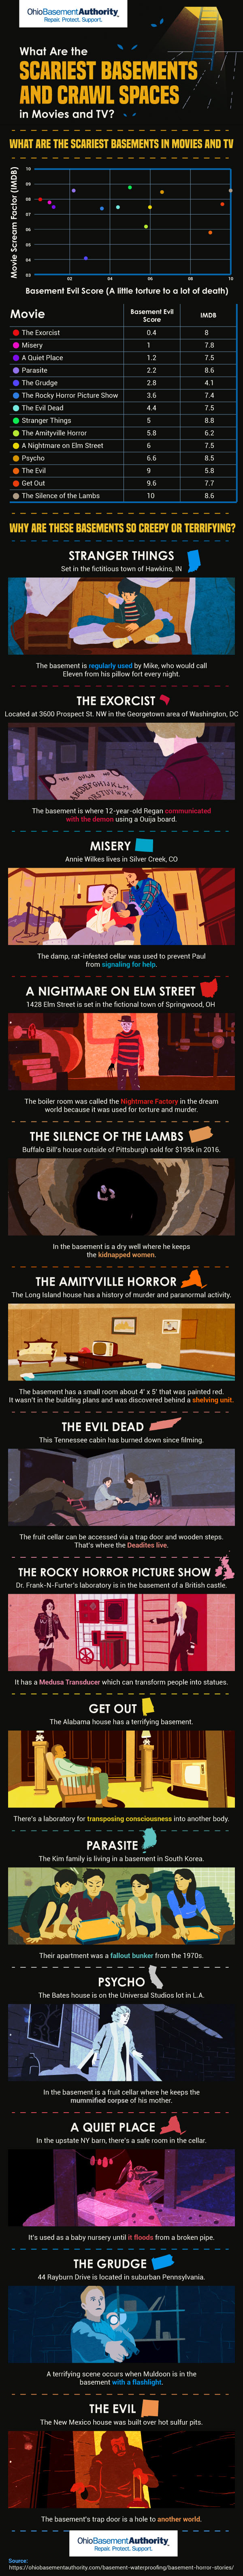 The Scariest Basements in Movies & TV